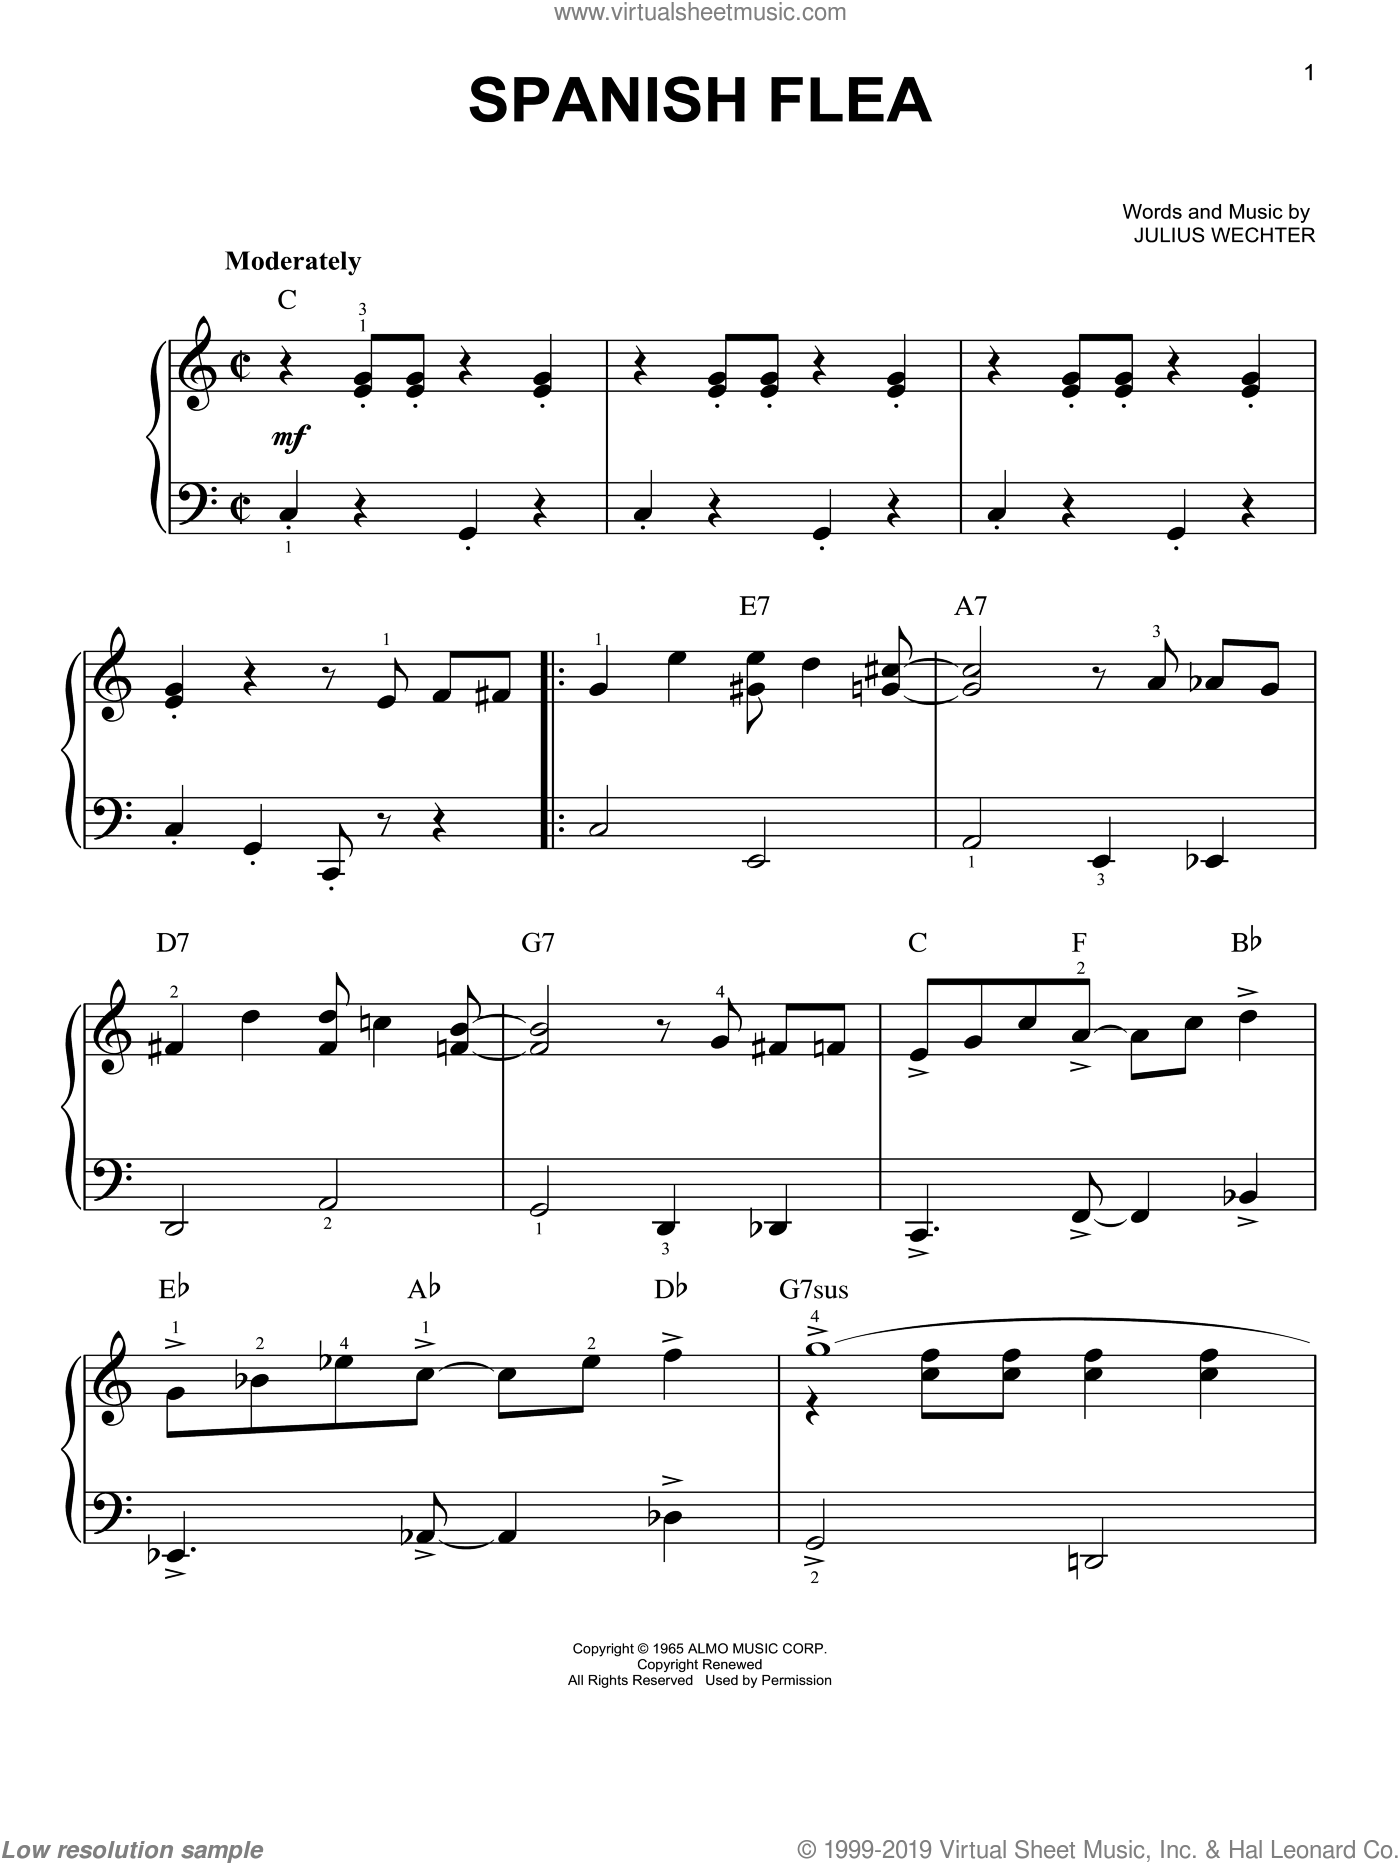 Spanish Flea sheet music for piano solo by Herb Alpert & The Tijuana Brass, Herb Alpert and Julius Wechter, easy skill level